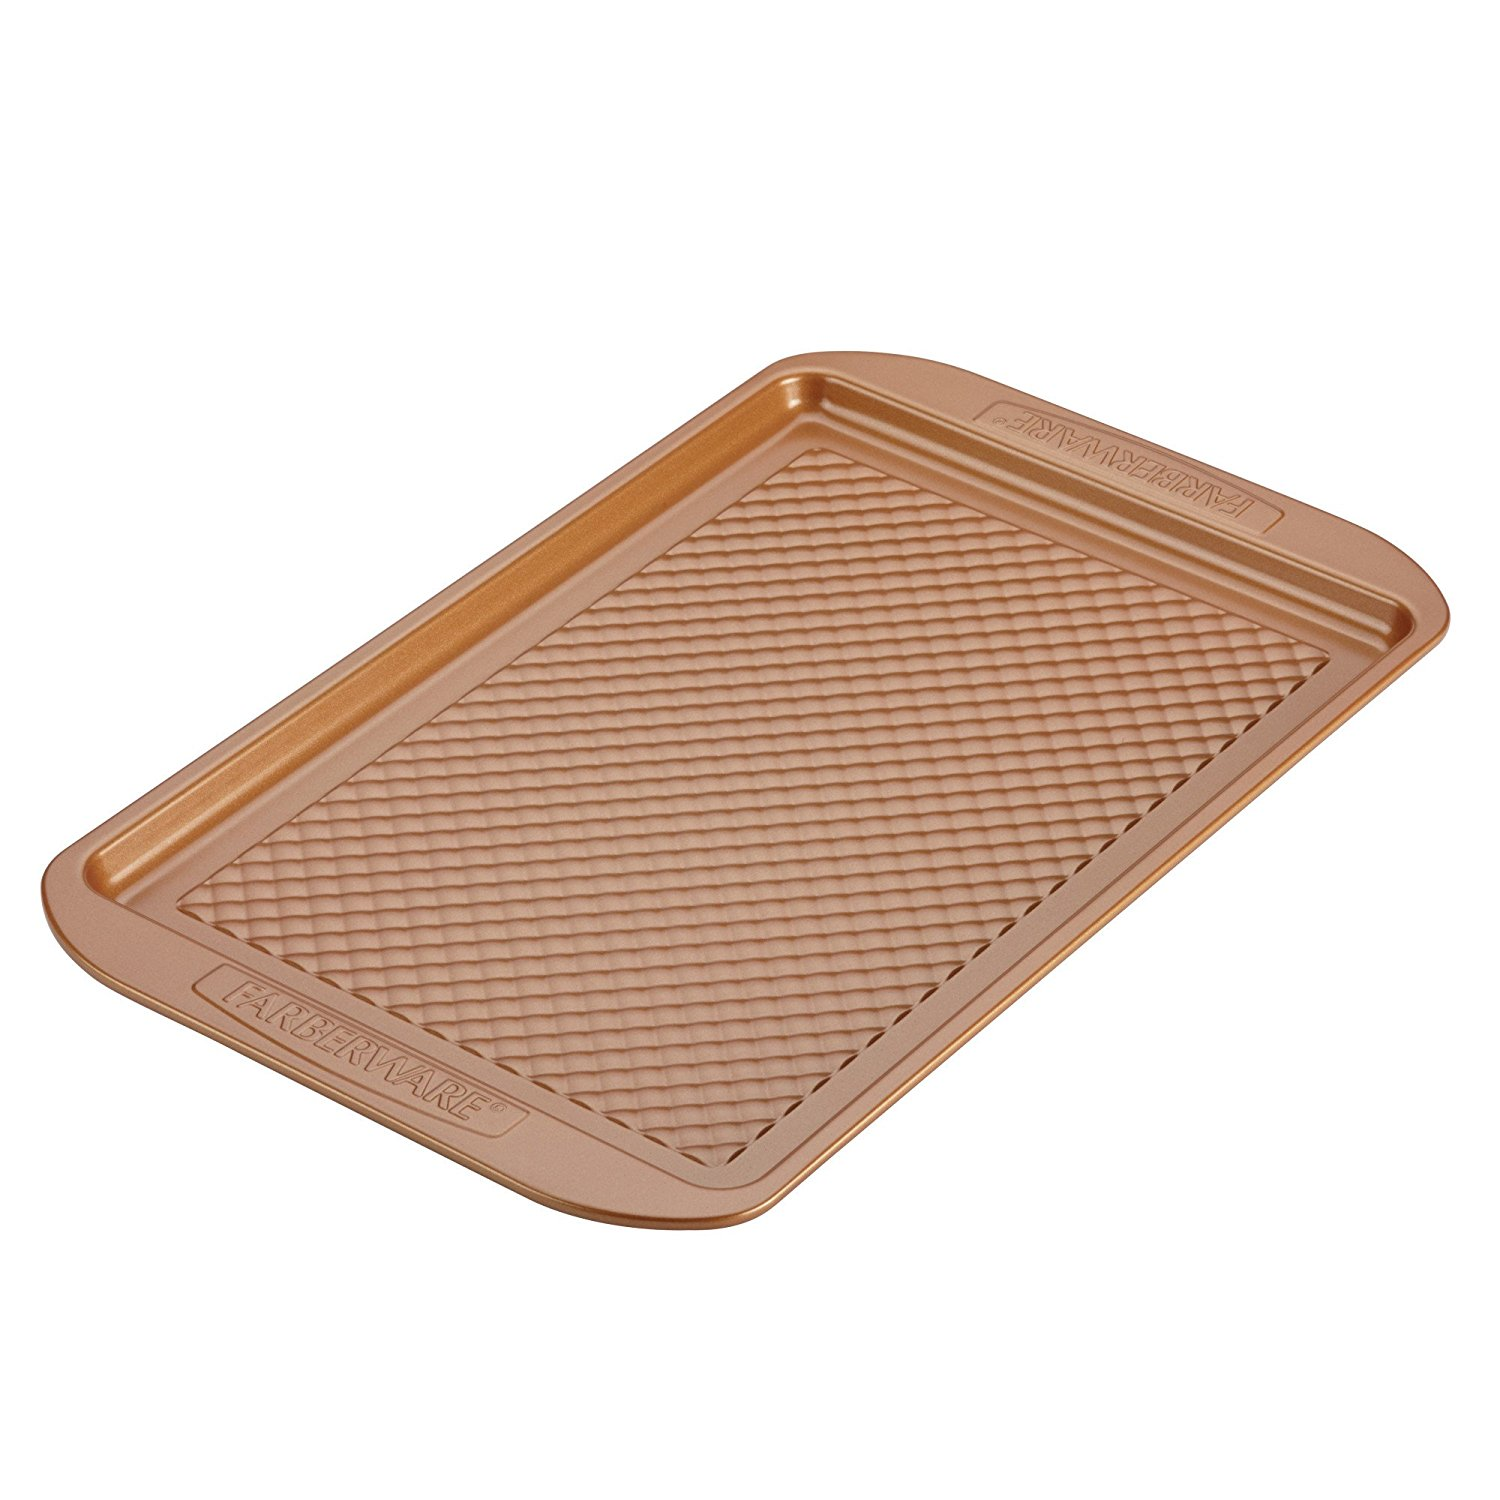 11-Inch x 17-Inch Cookie Pan, Copper, Constructed from durable, warp-resistant steel for long-lasting,... by